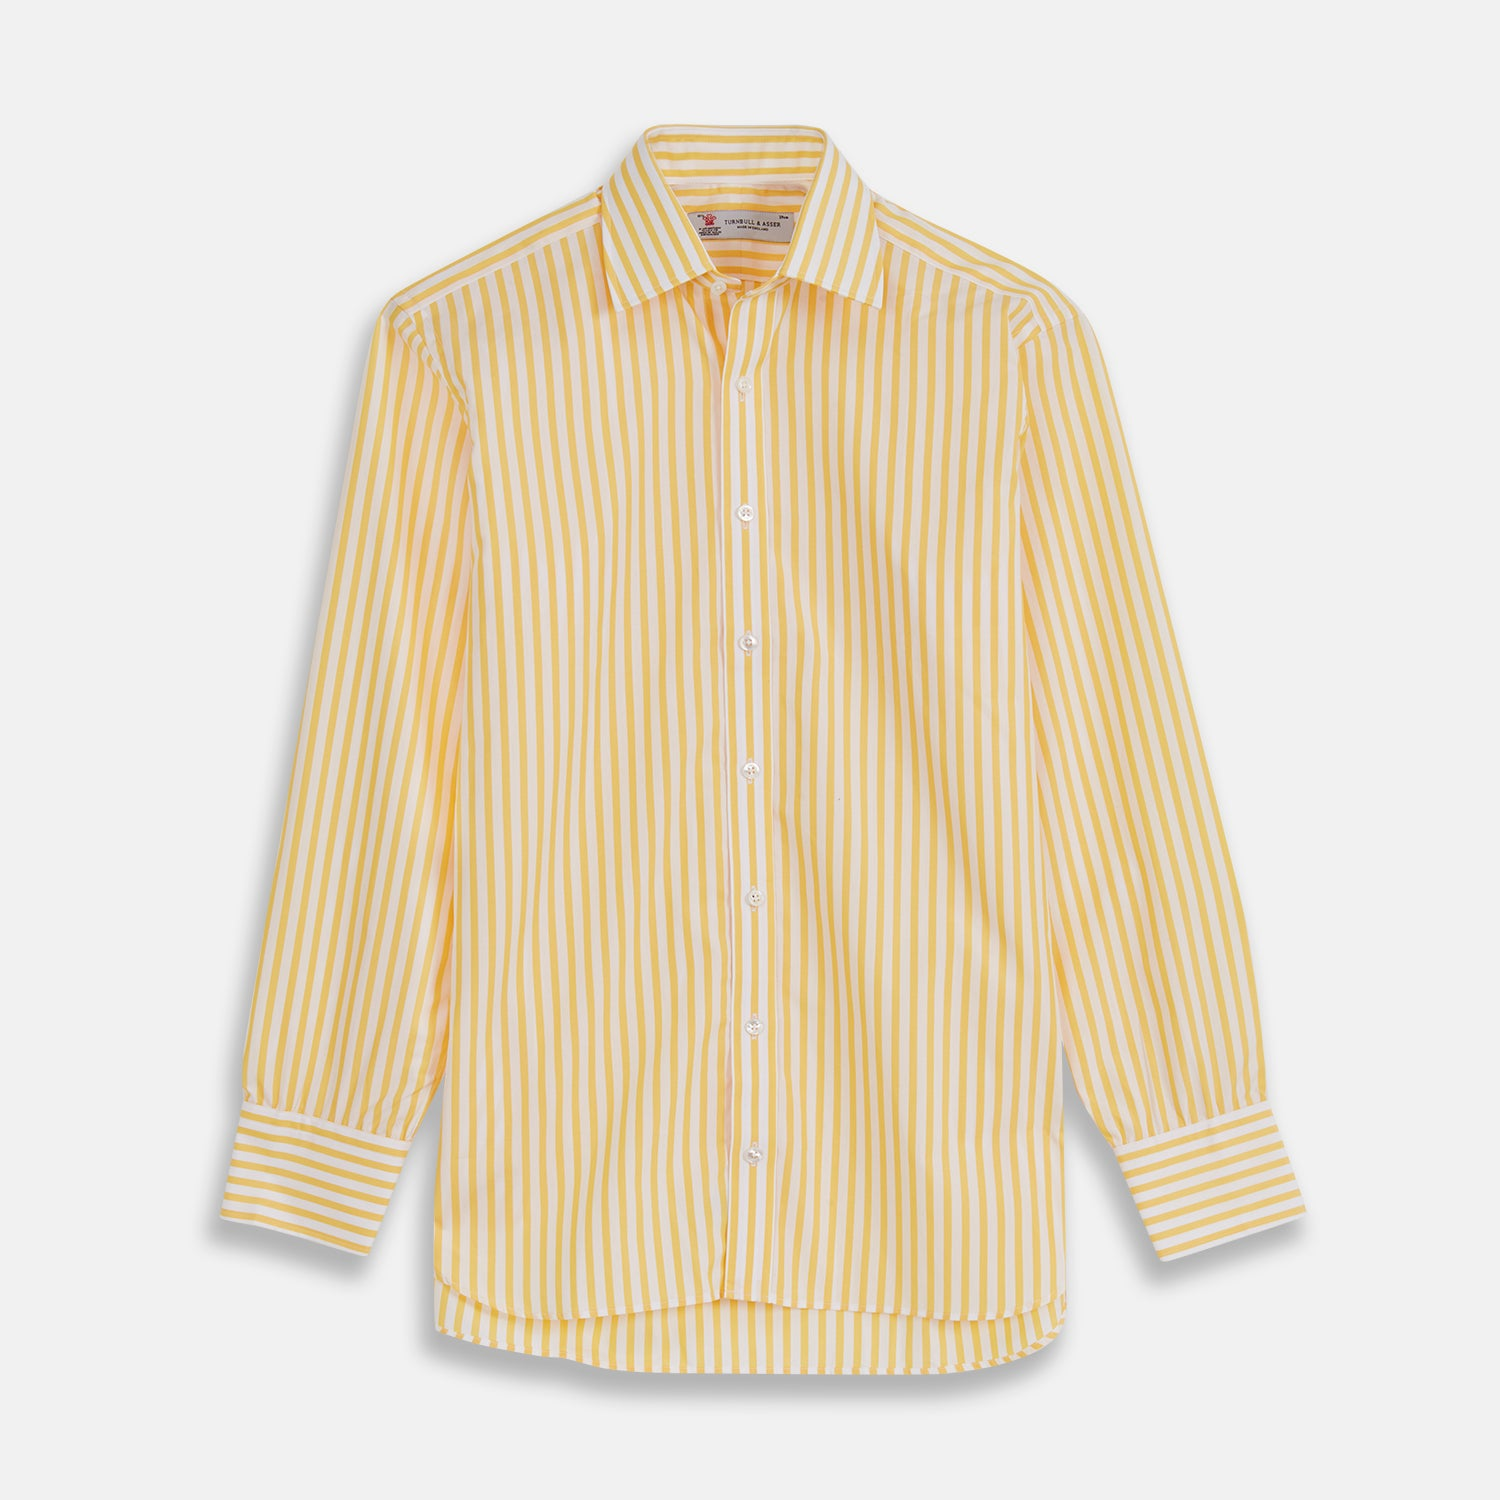 Yellow & White Candy Stripe Shirt with T&A Collar and 3-Button Cuffs